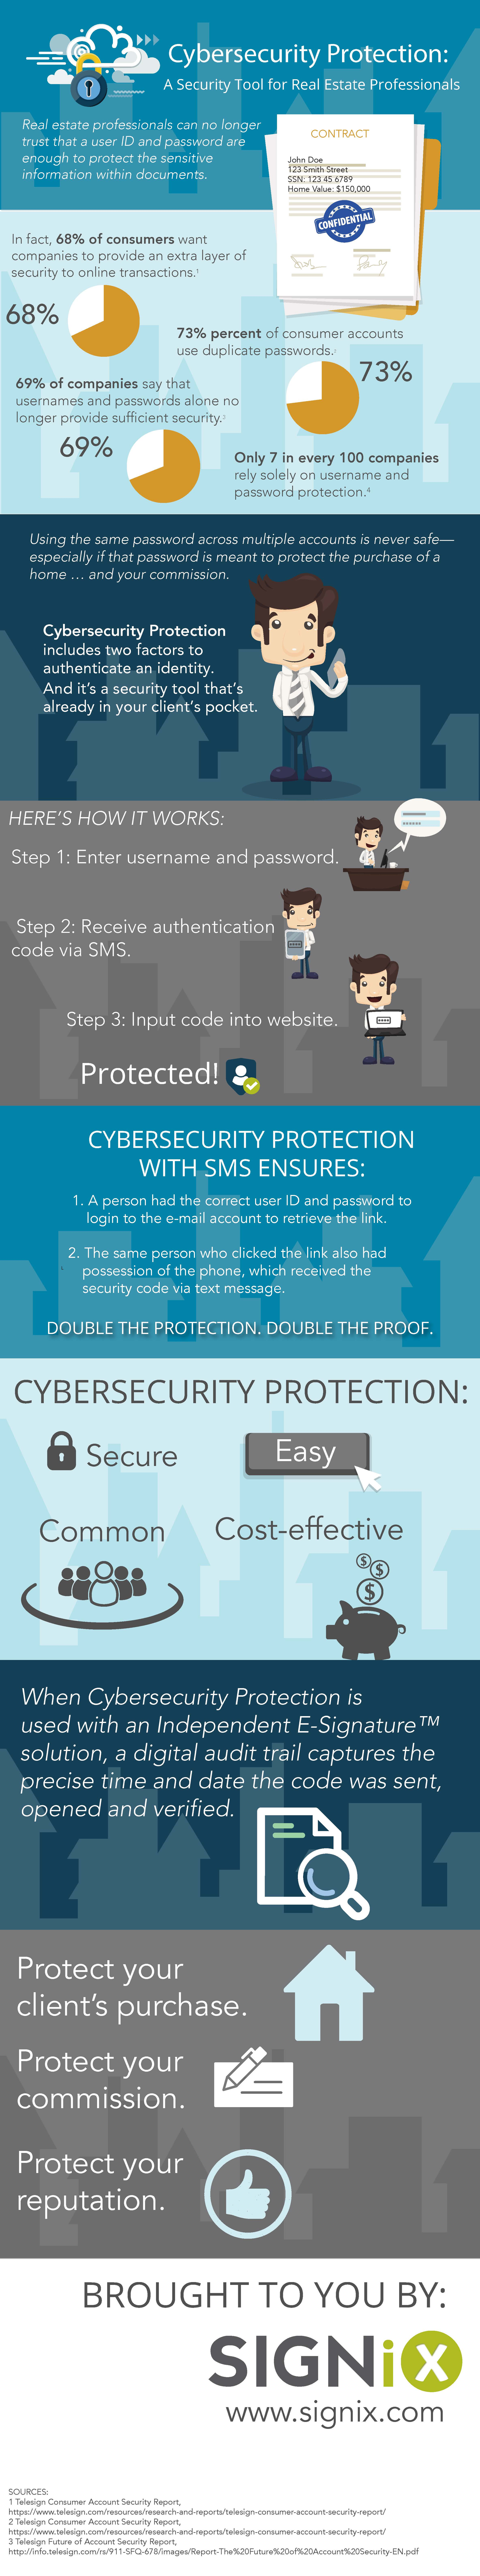 [Infographic] Cybersecurity Protection for Real Estate